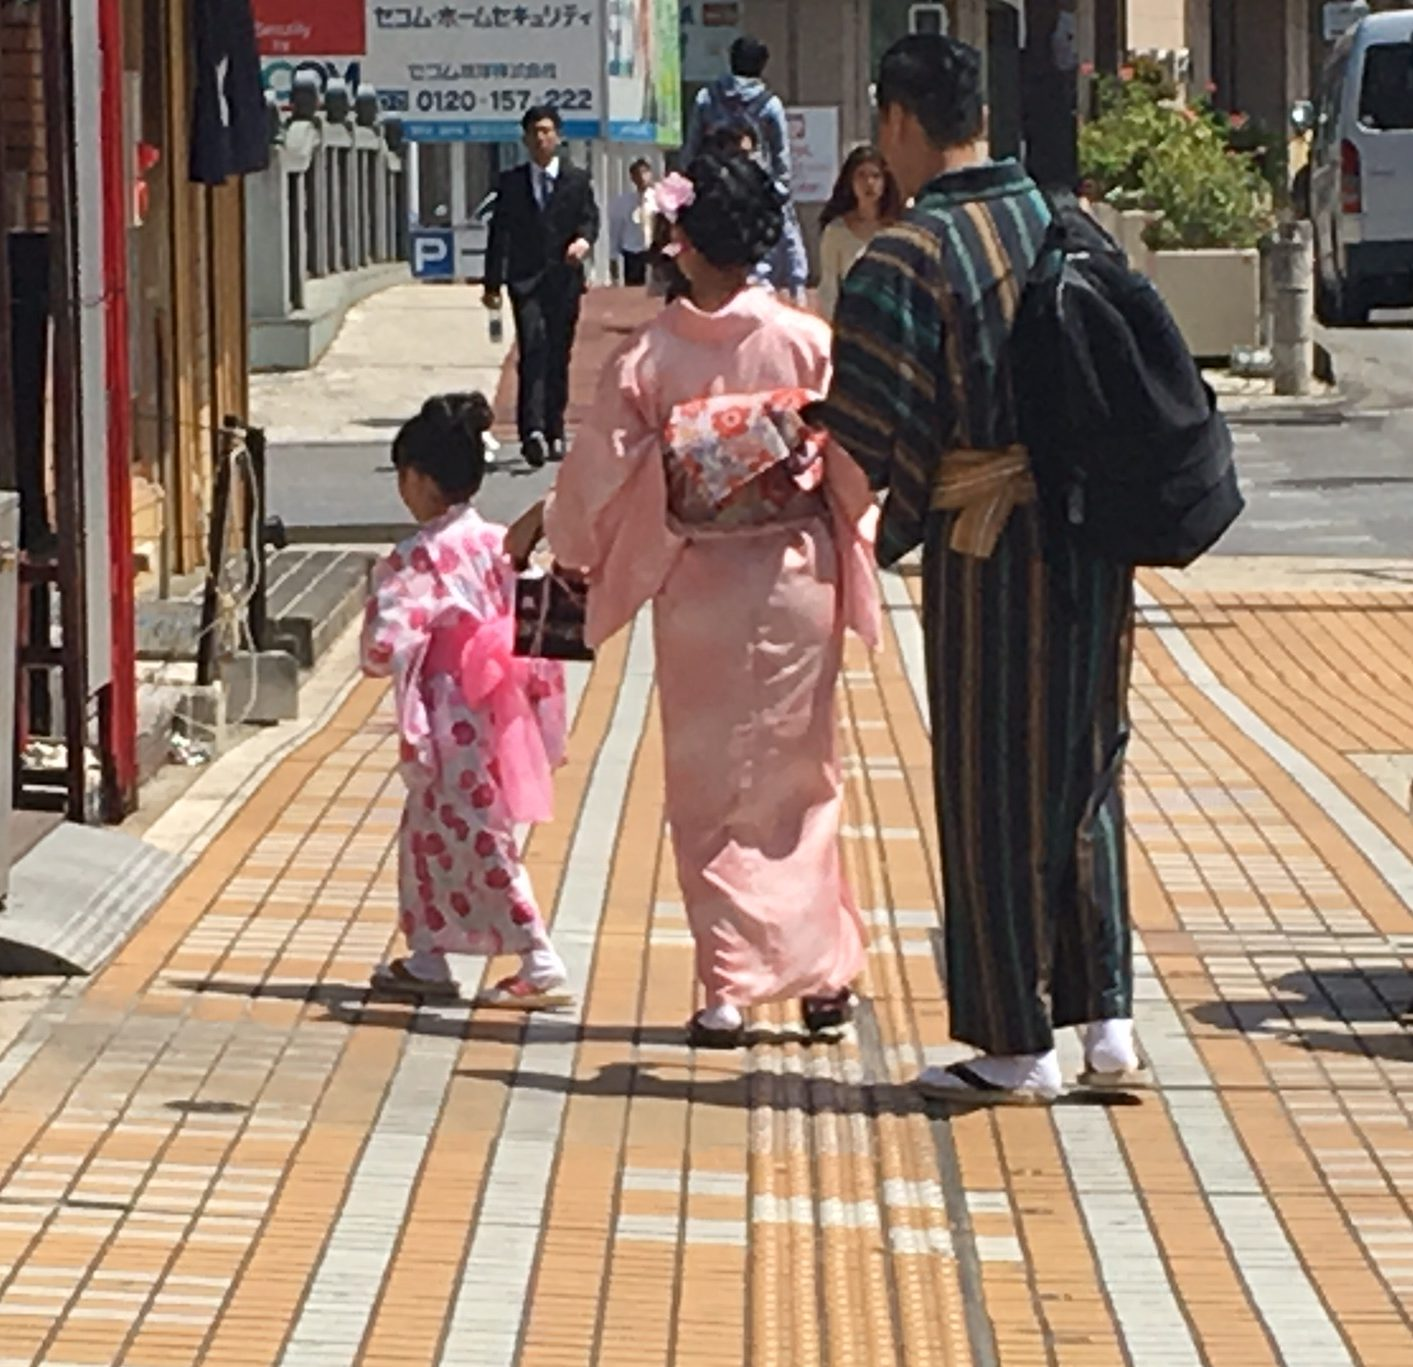 A man, a woman and a child walking down the street in traditional clothes